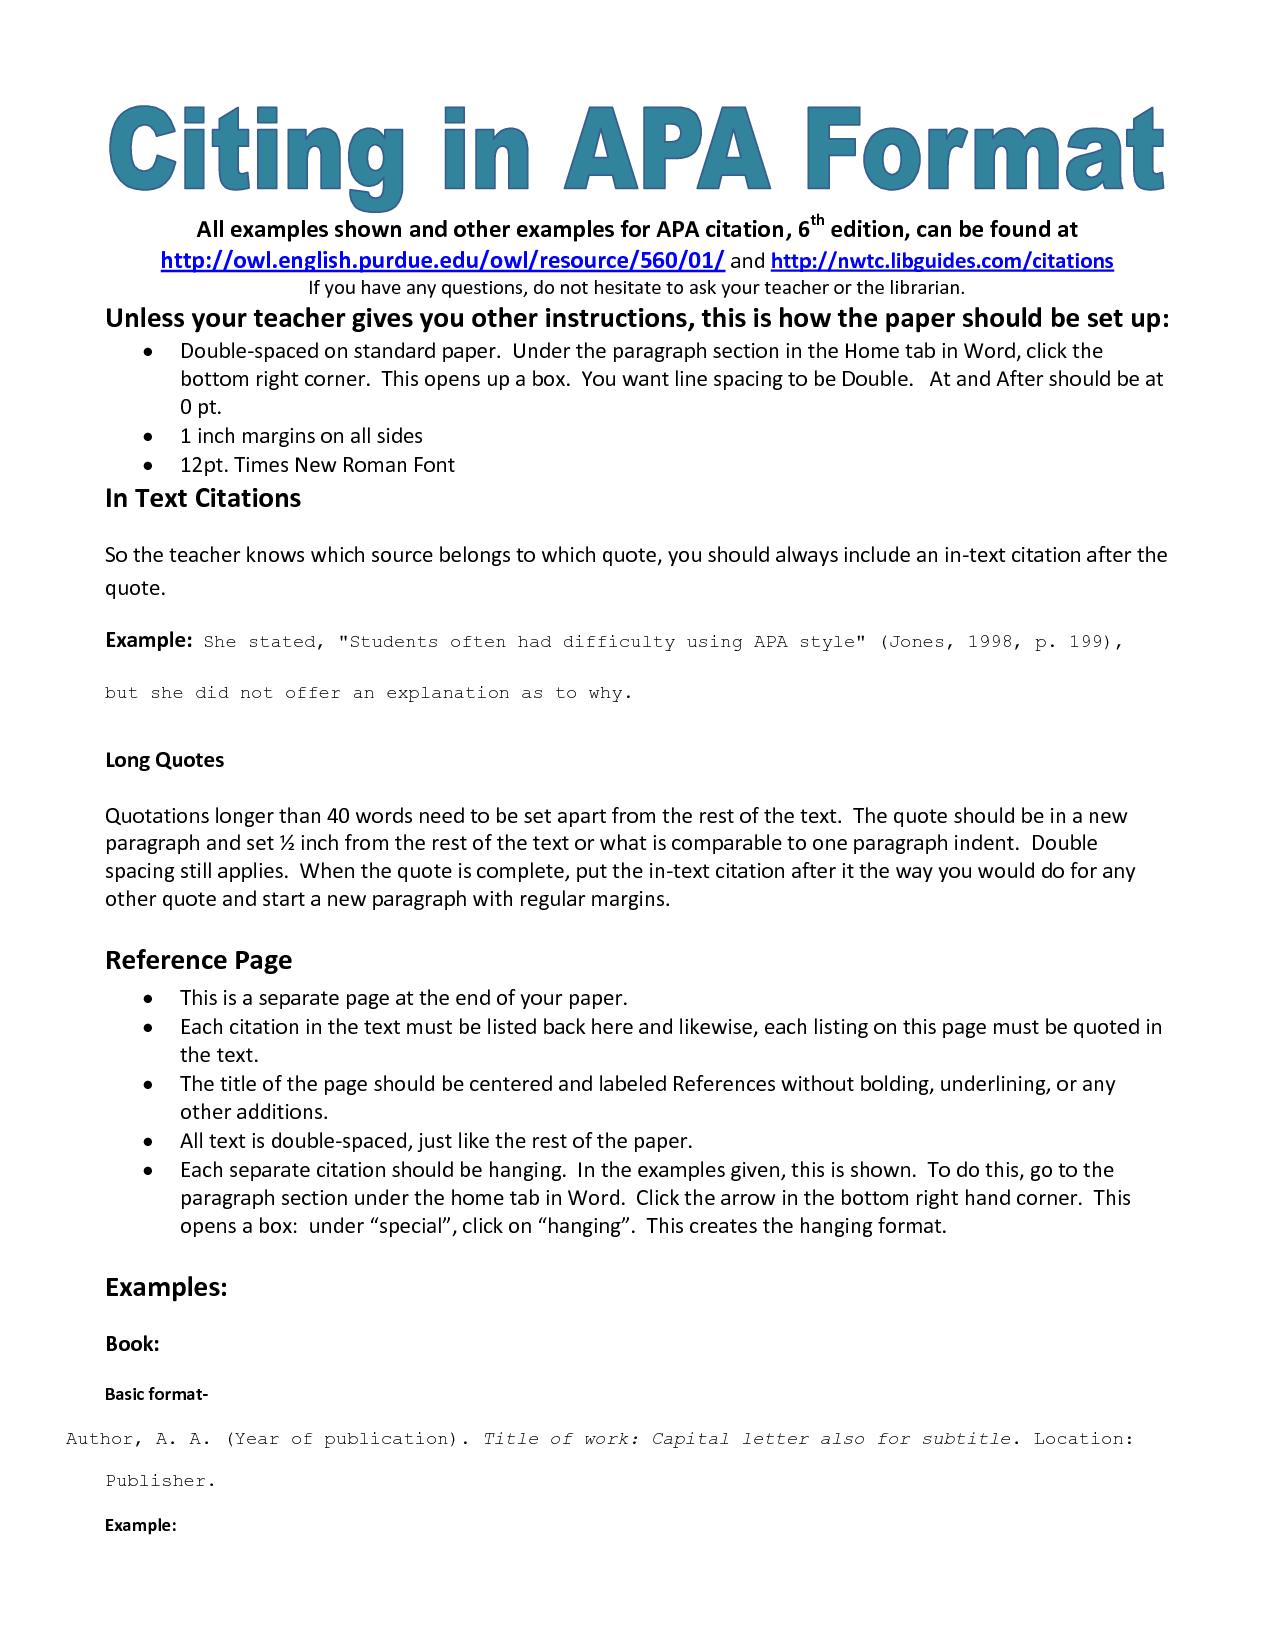 001 Essay Example How To Cite An Stunning Apa In A Book Style Article Quote Sources Format Full